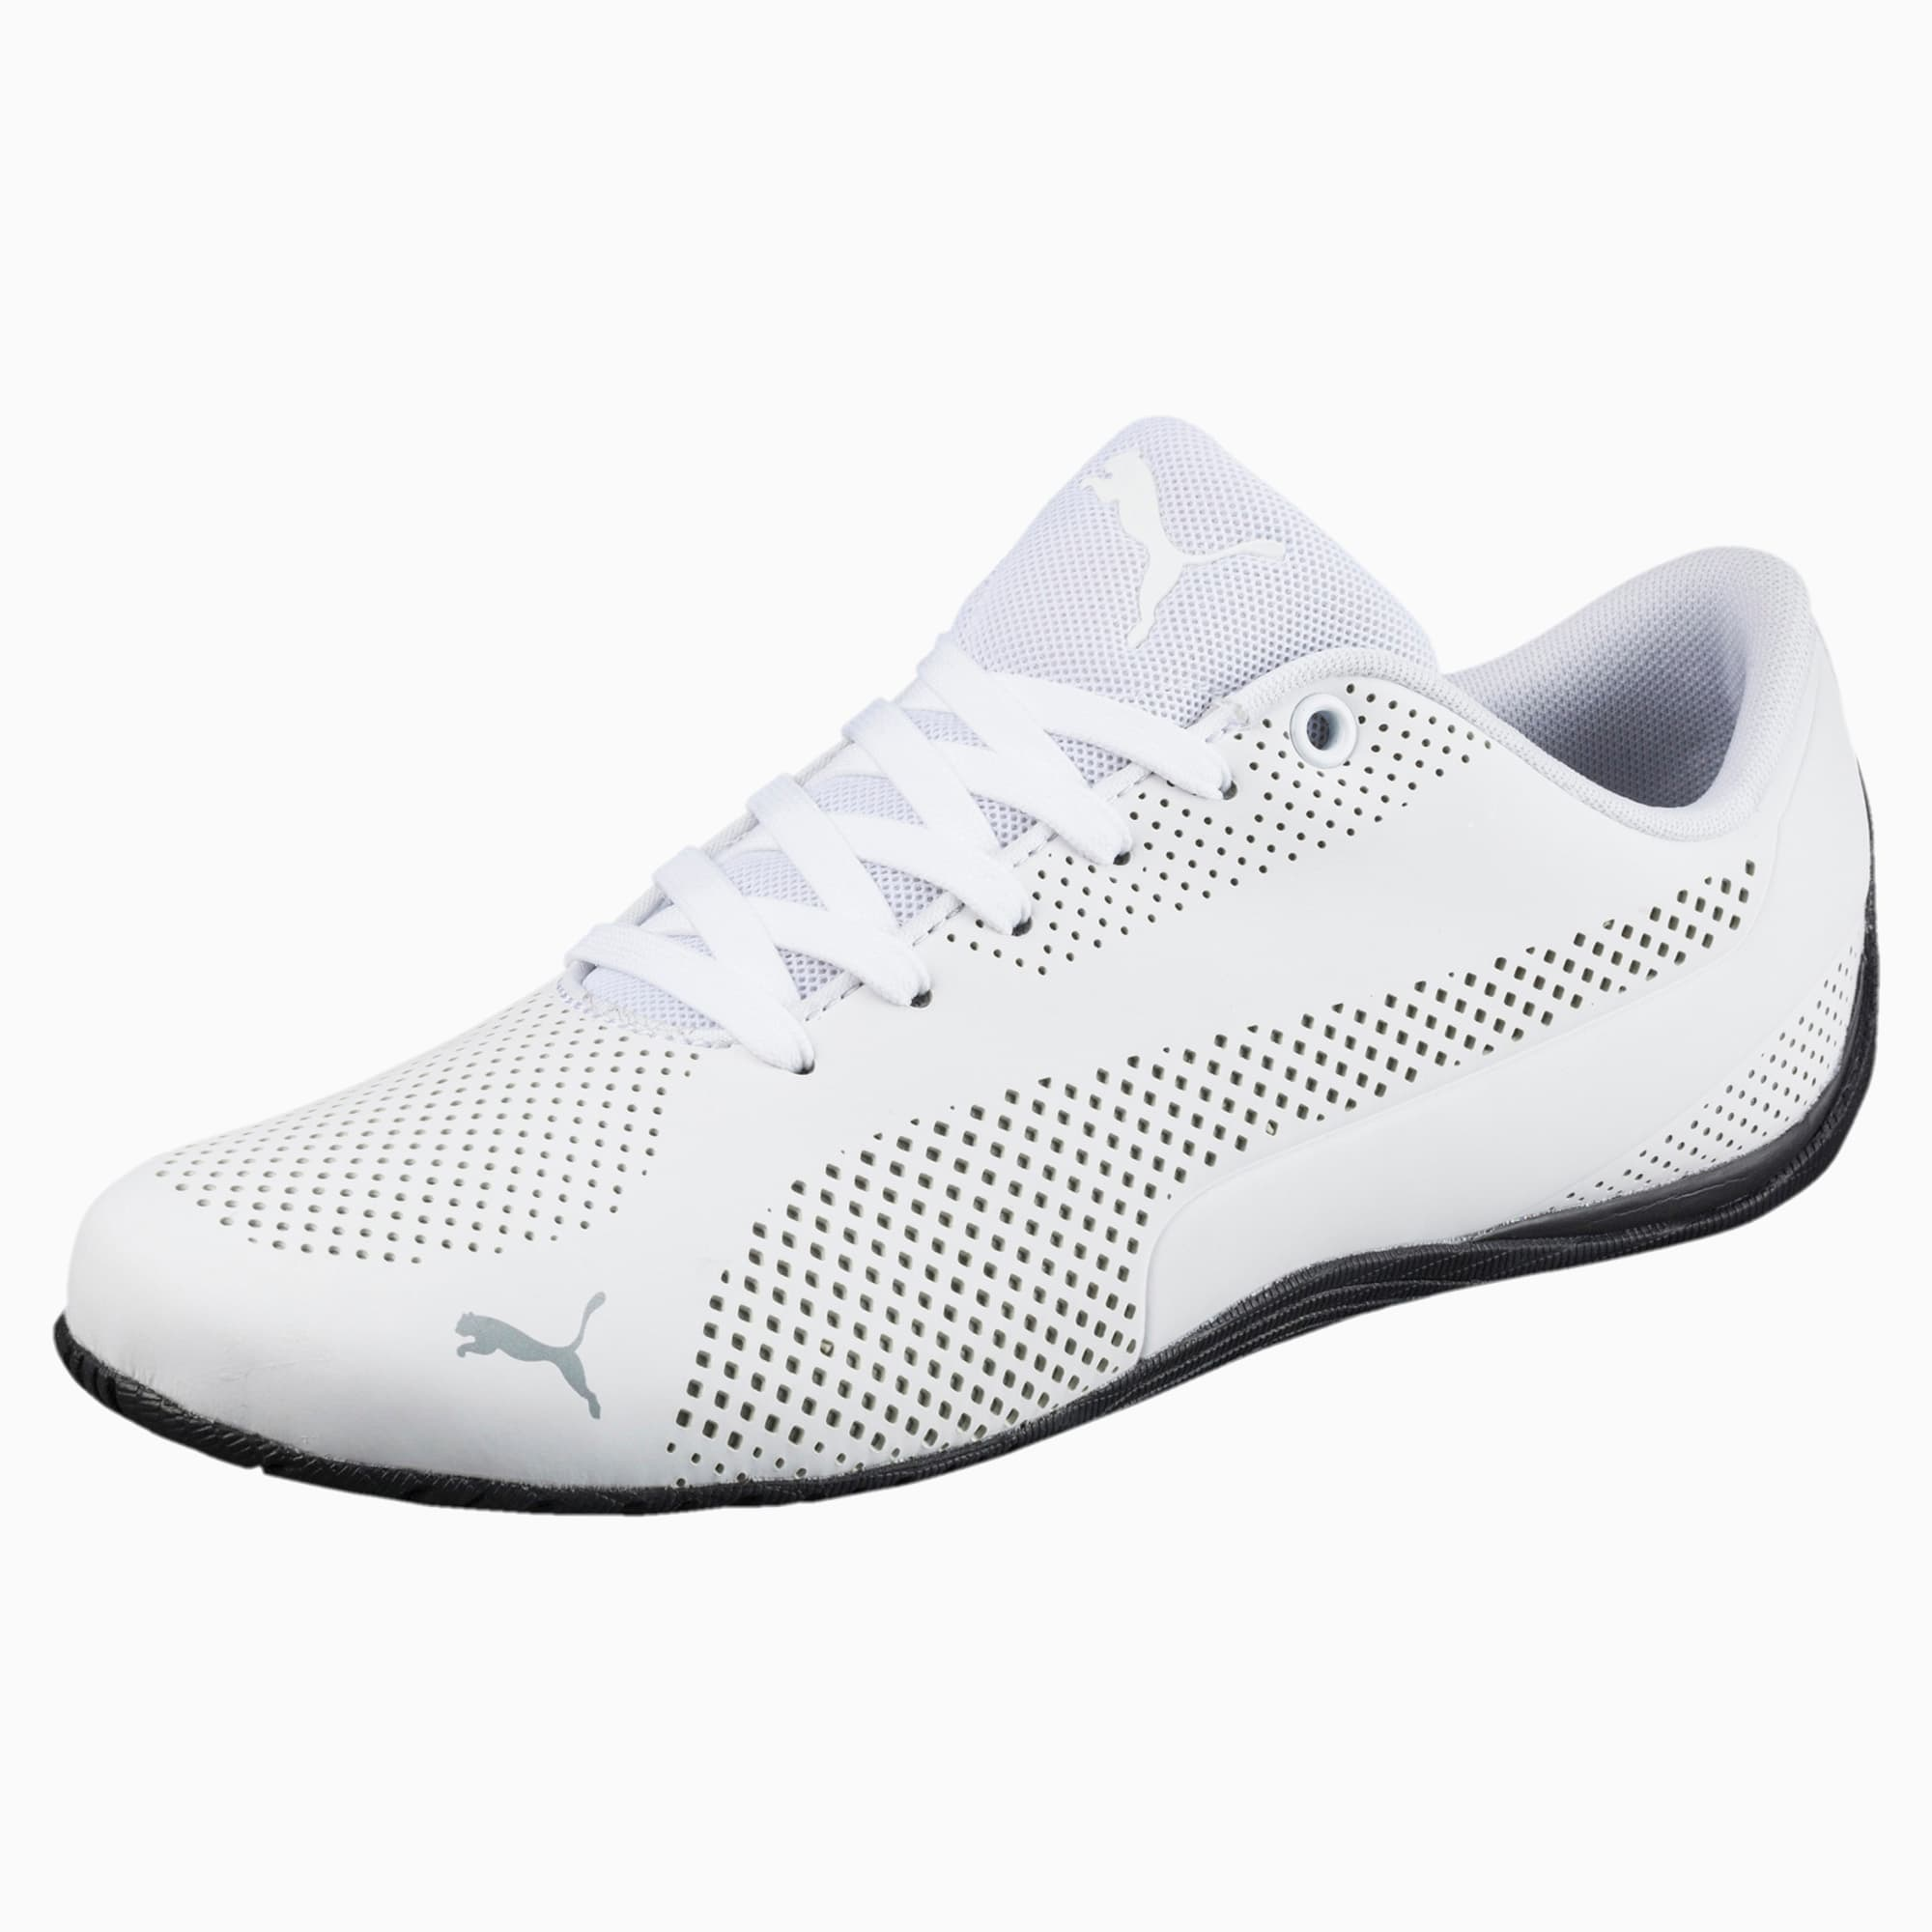 Drift Cat Ultra Reflective Men's Shoes